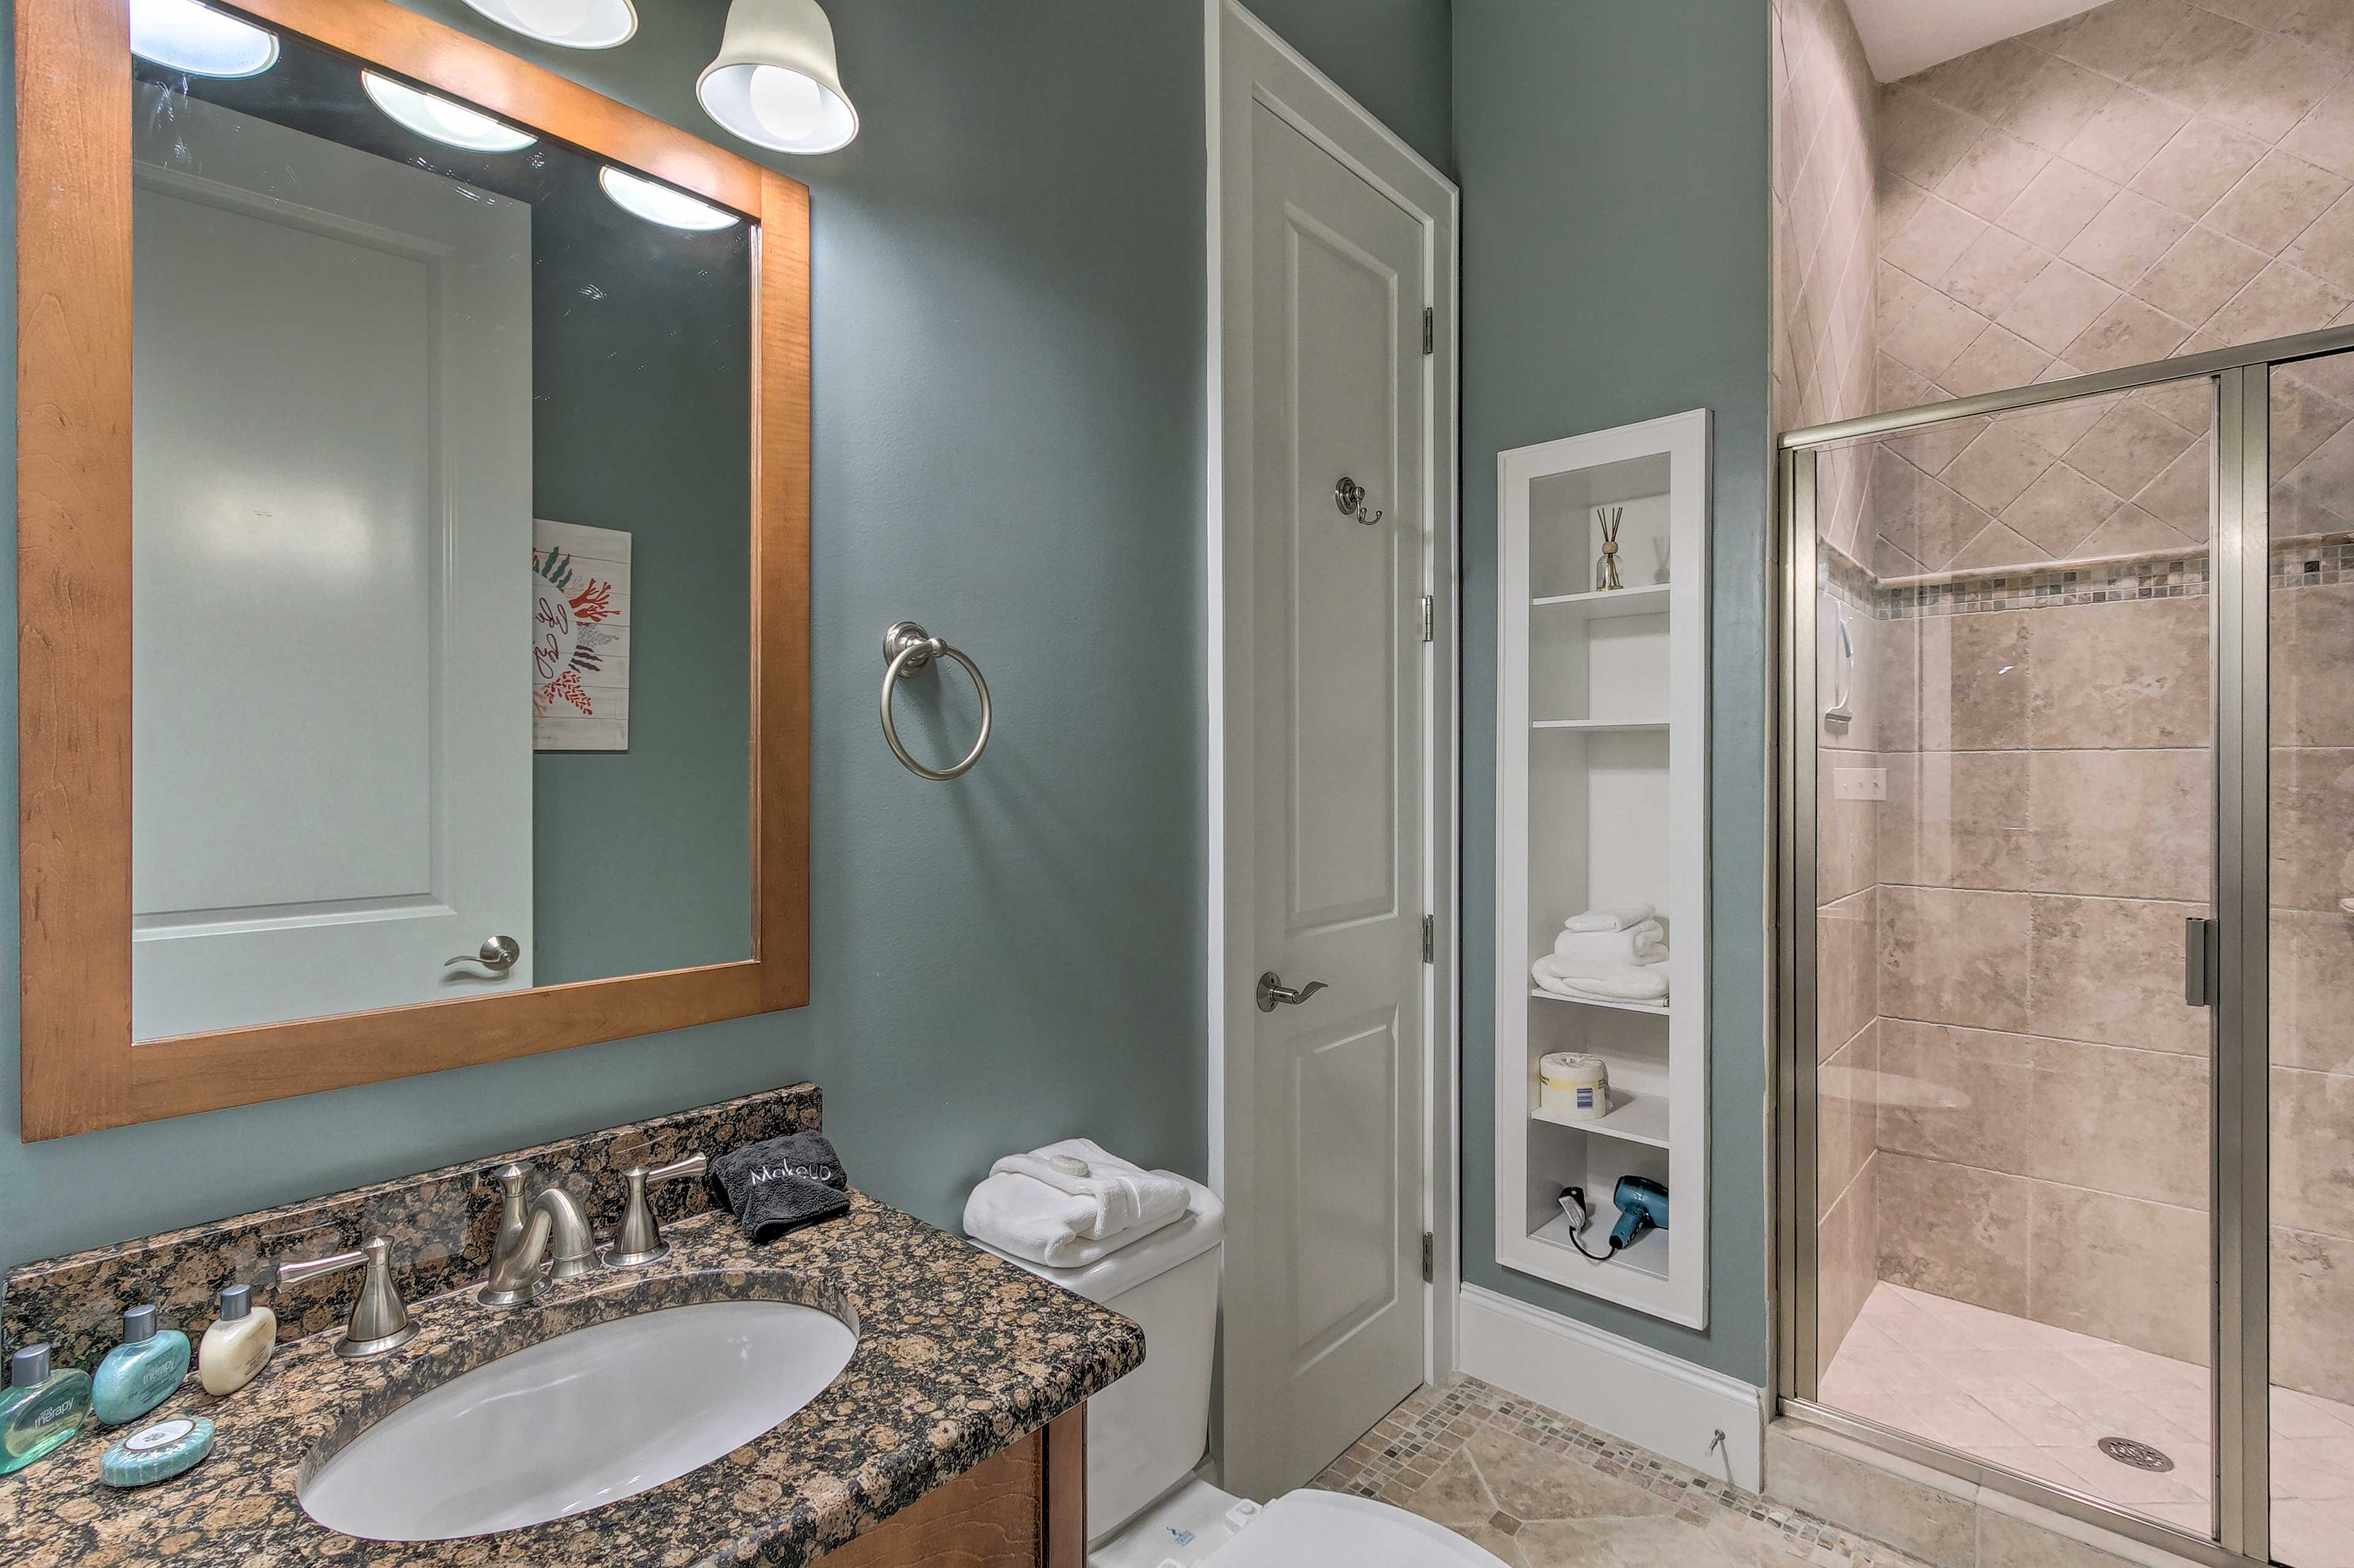 There are 4 full bathrooms in this townhome!